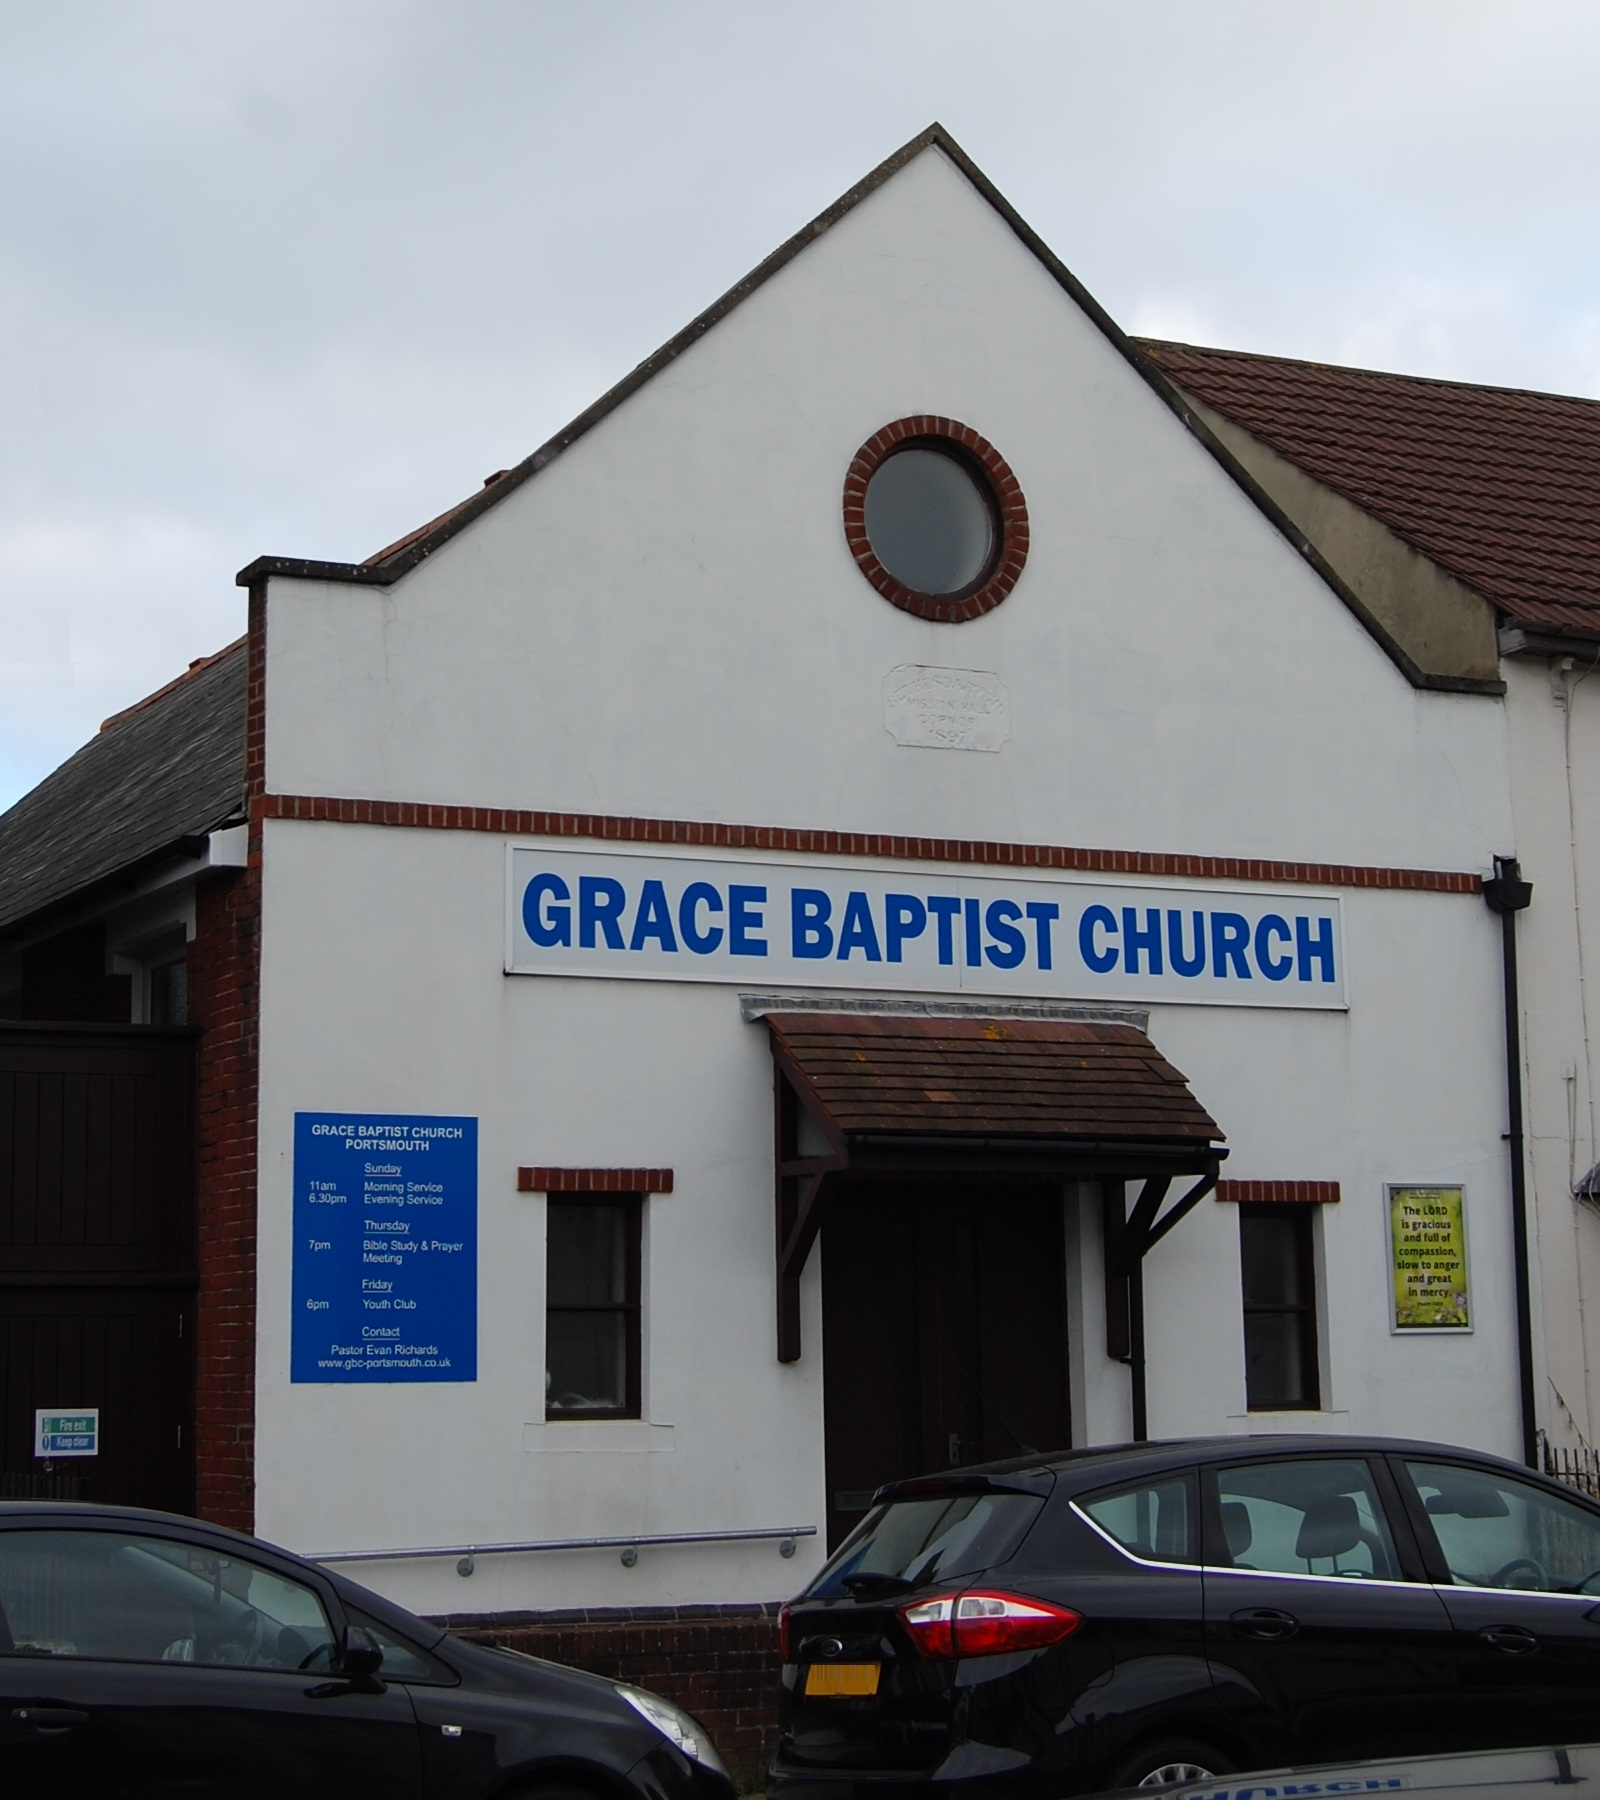 File:Grace Baptist Church, 46 Copnor Road, Copnor